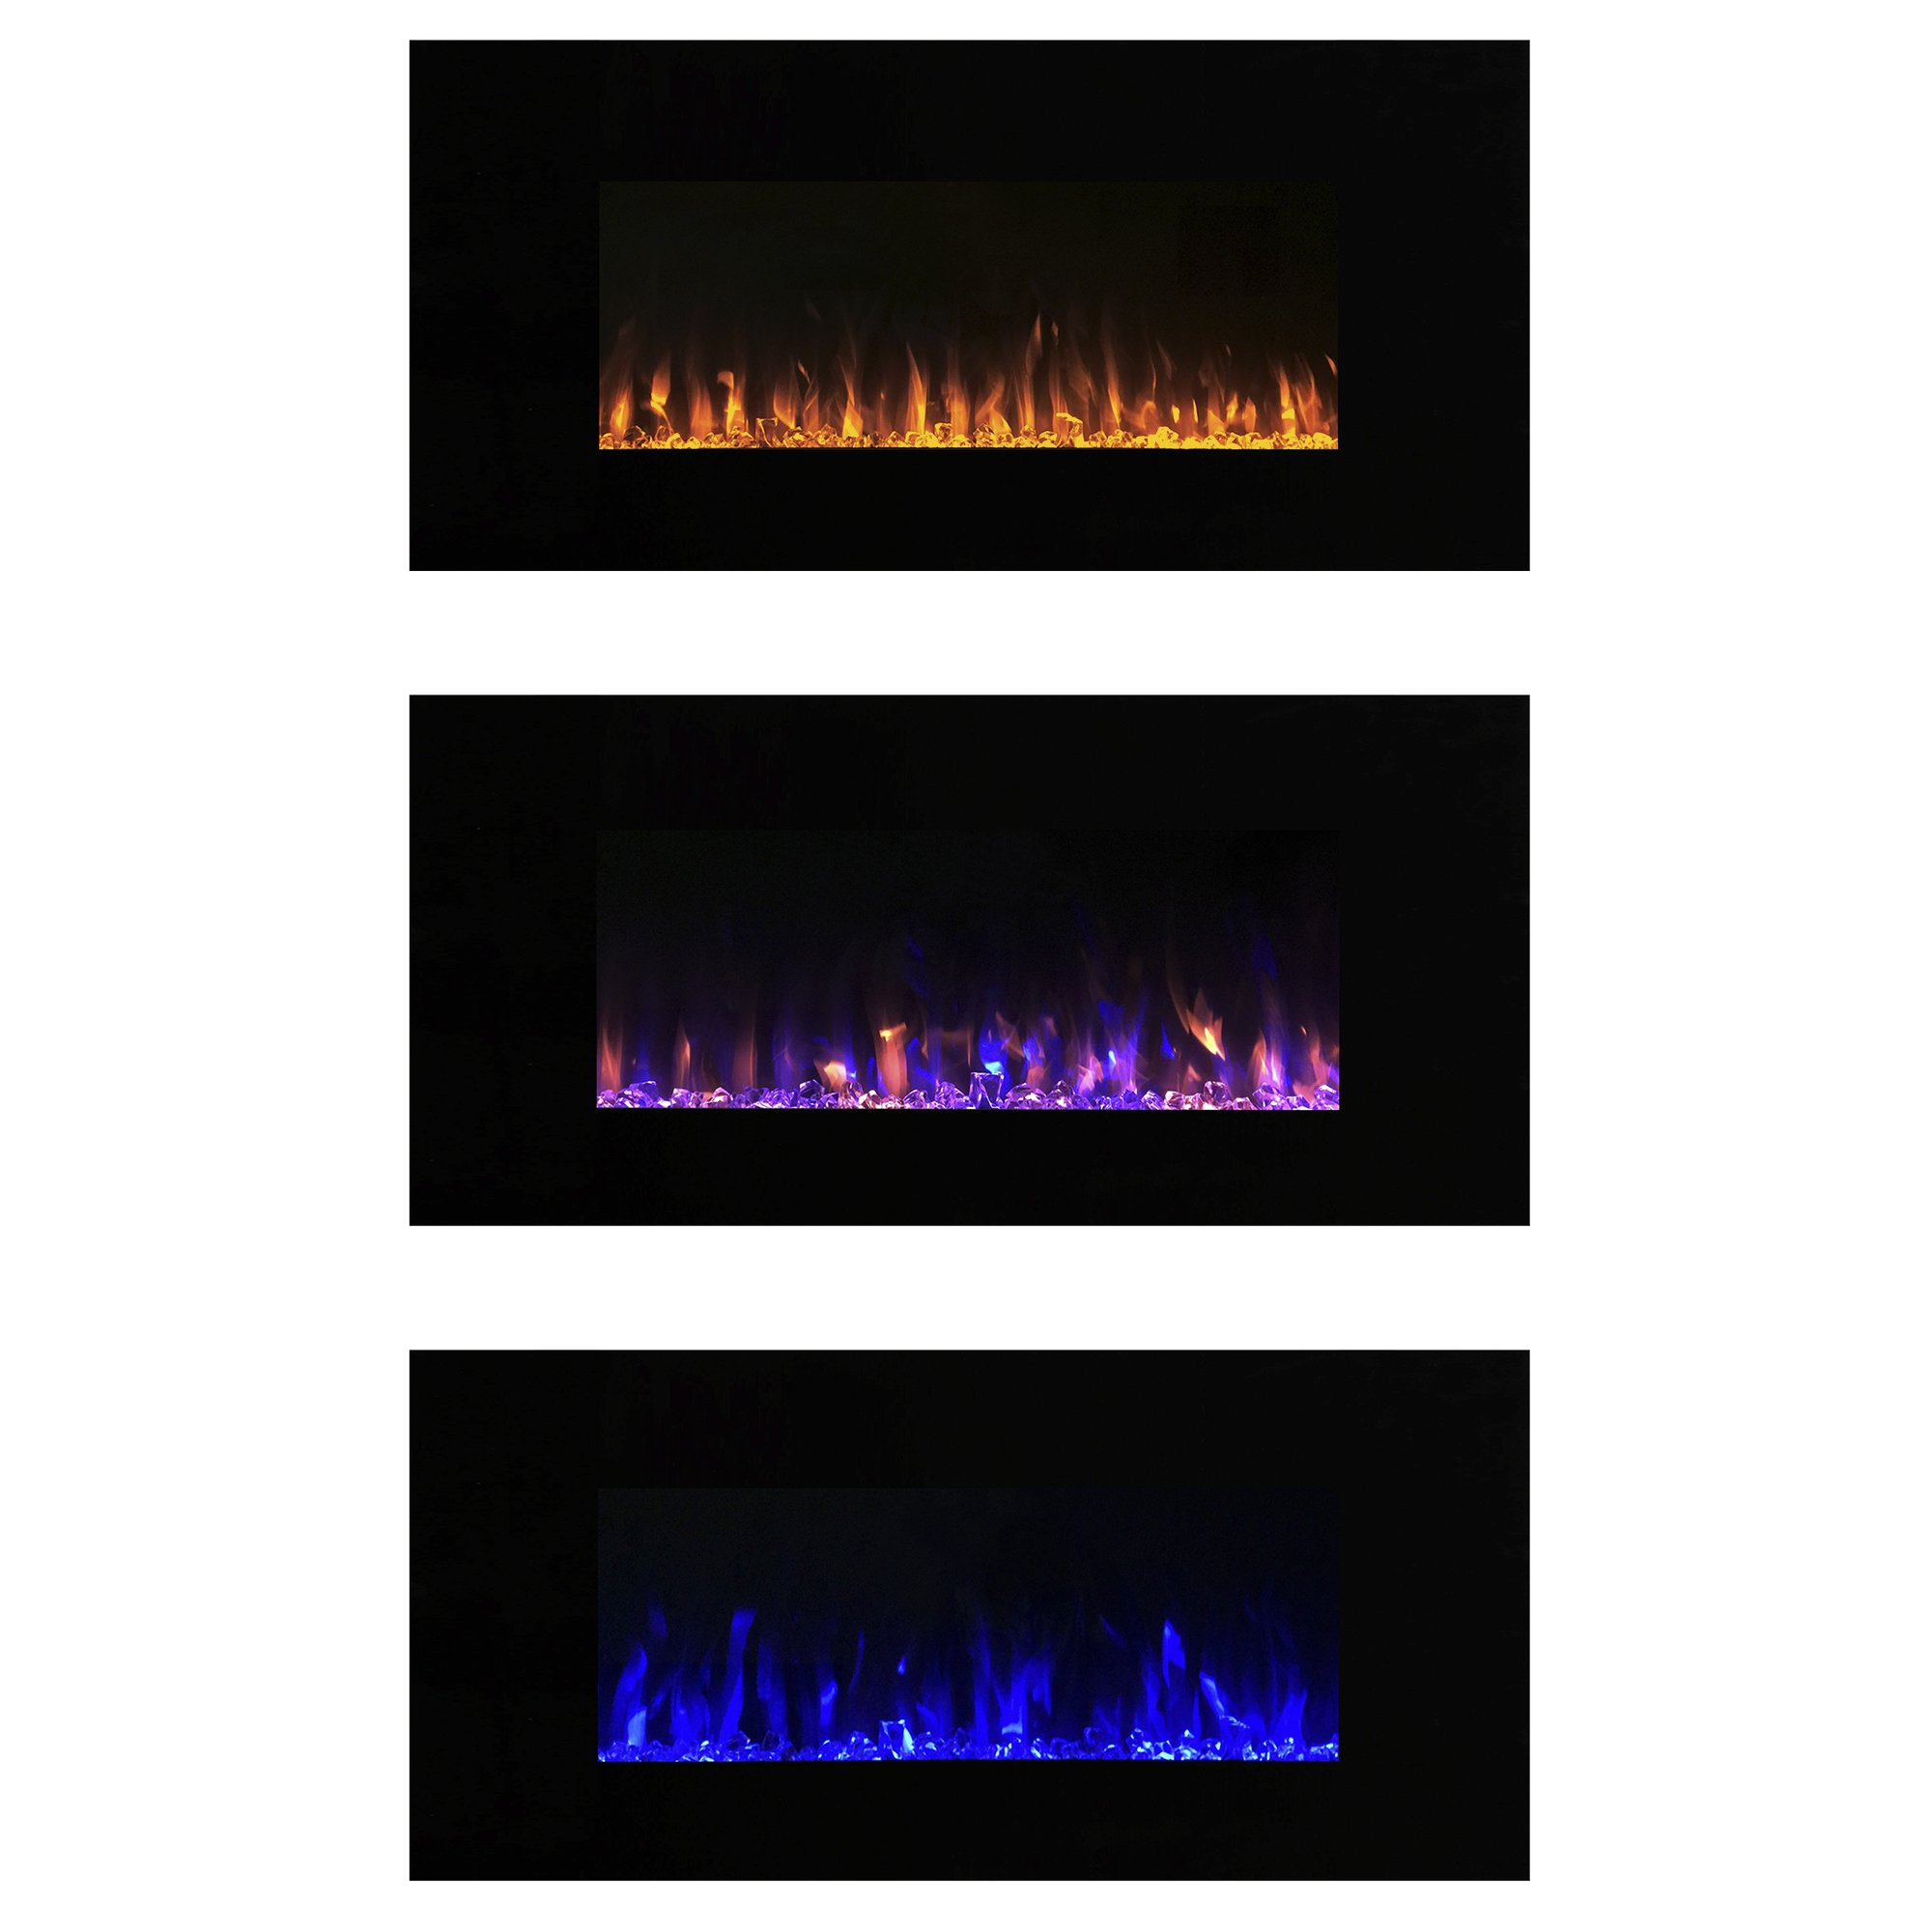 Electric Fireplace Wall Mounted, LED Fire and Ice Flame, With Remote 42 inch by Northwest by Northwest (Image #2)